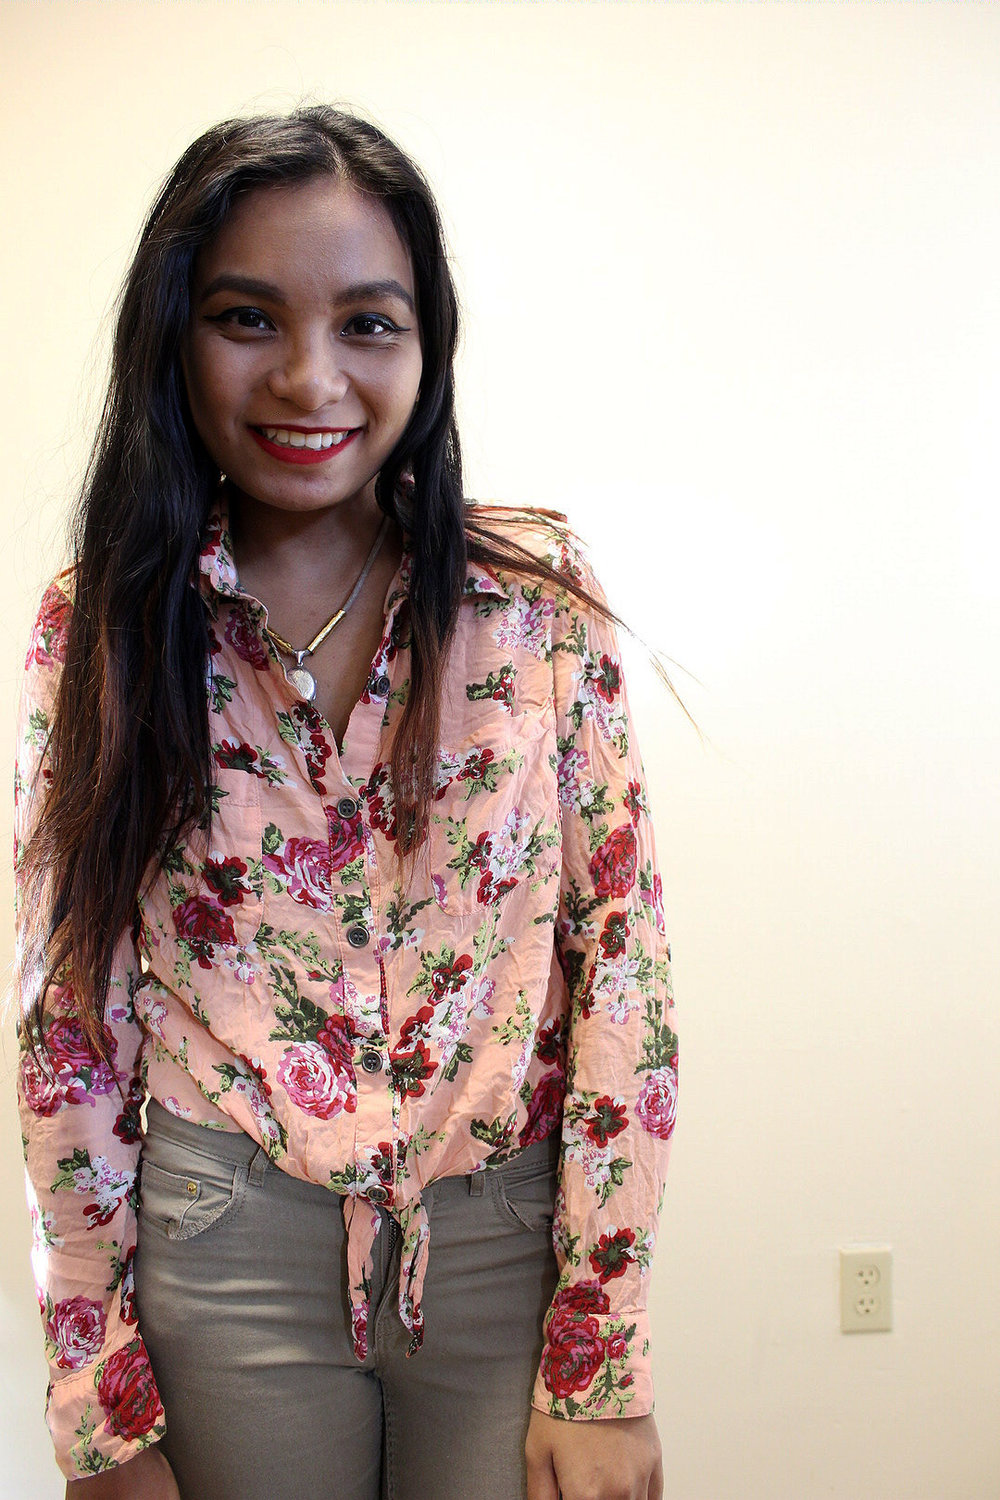 Double-Pink-Blazer-Floral-Button-Up-Tan-Pants-Blogger-Style-Office-Wear-LINDATENCHITRAN-1-1080x1620.jpg